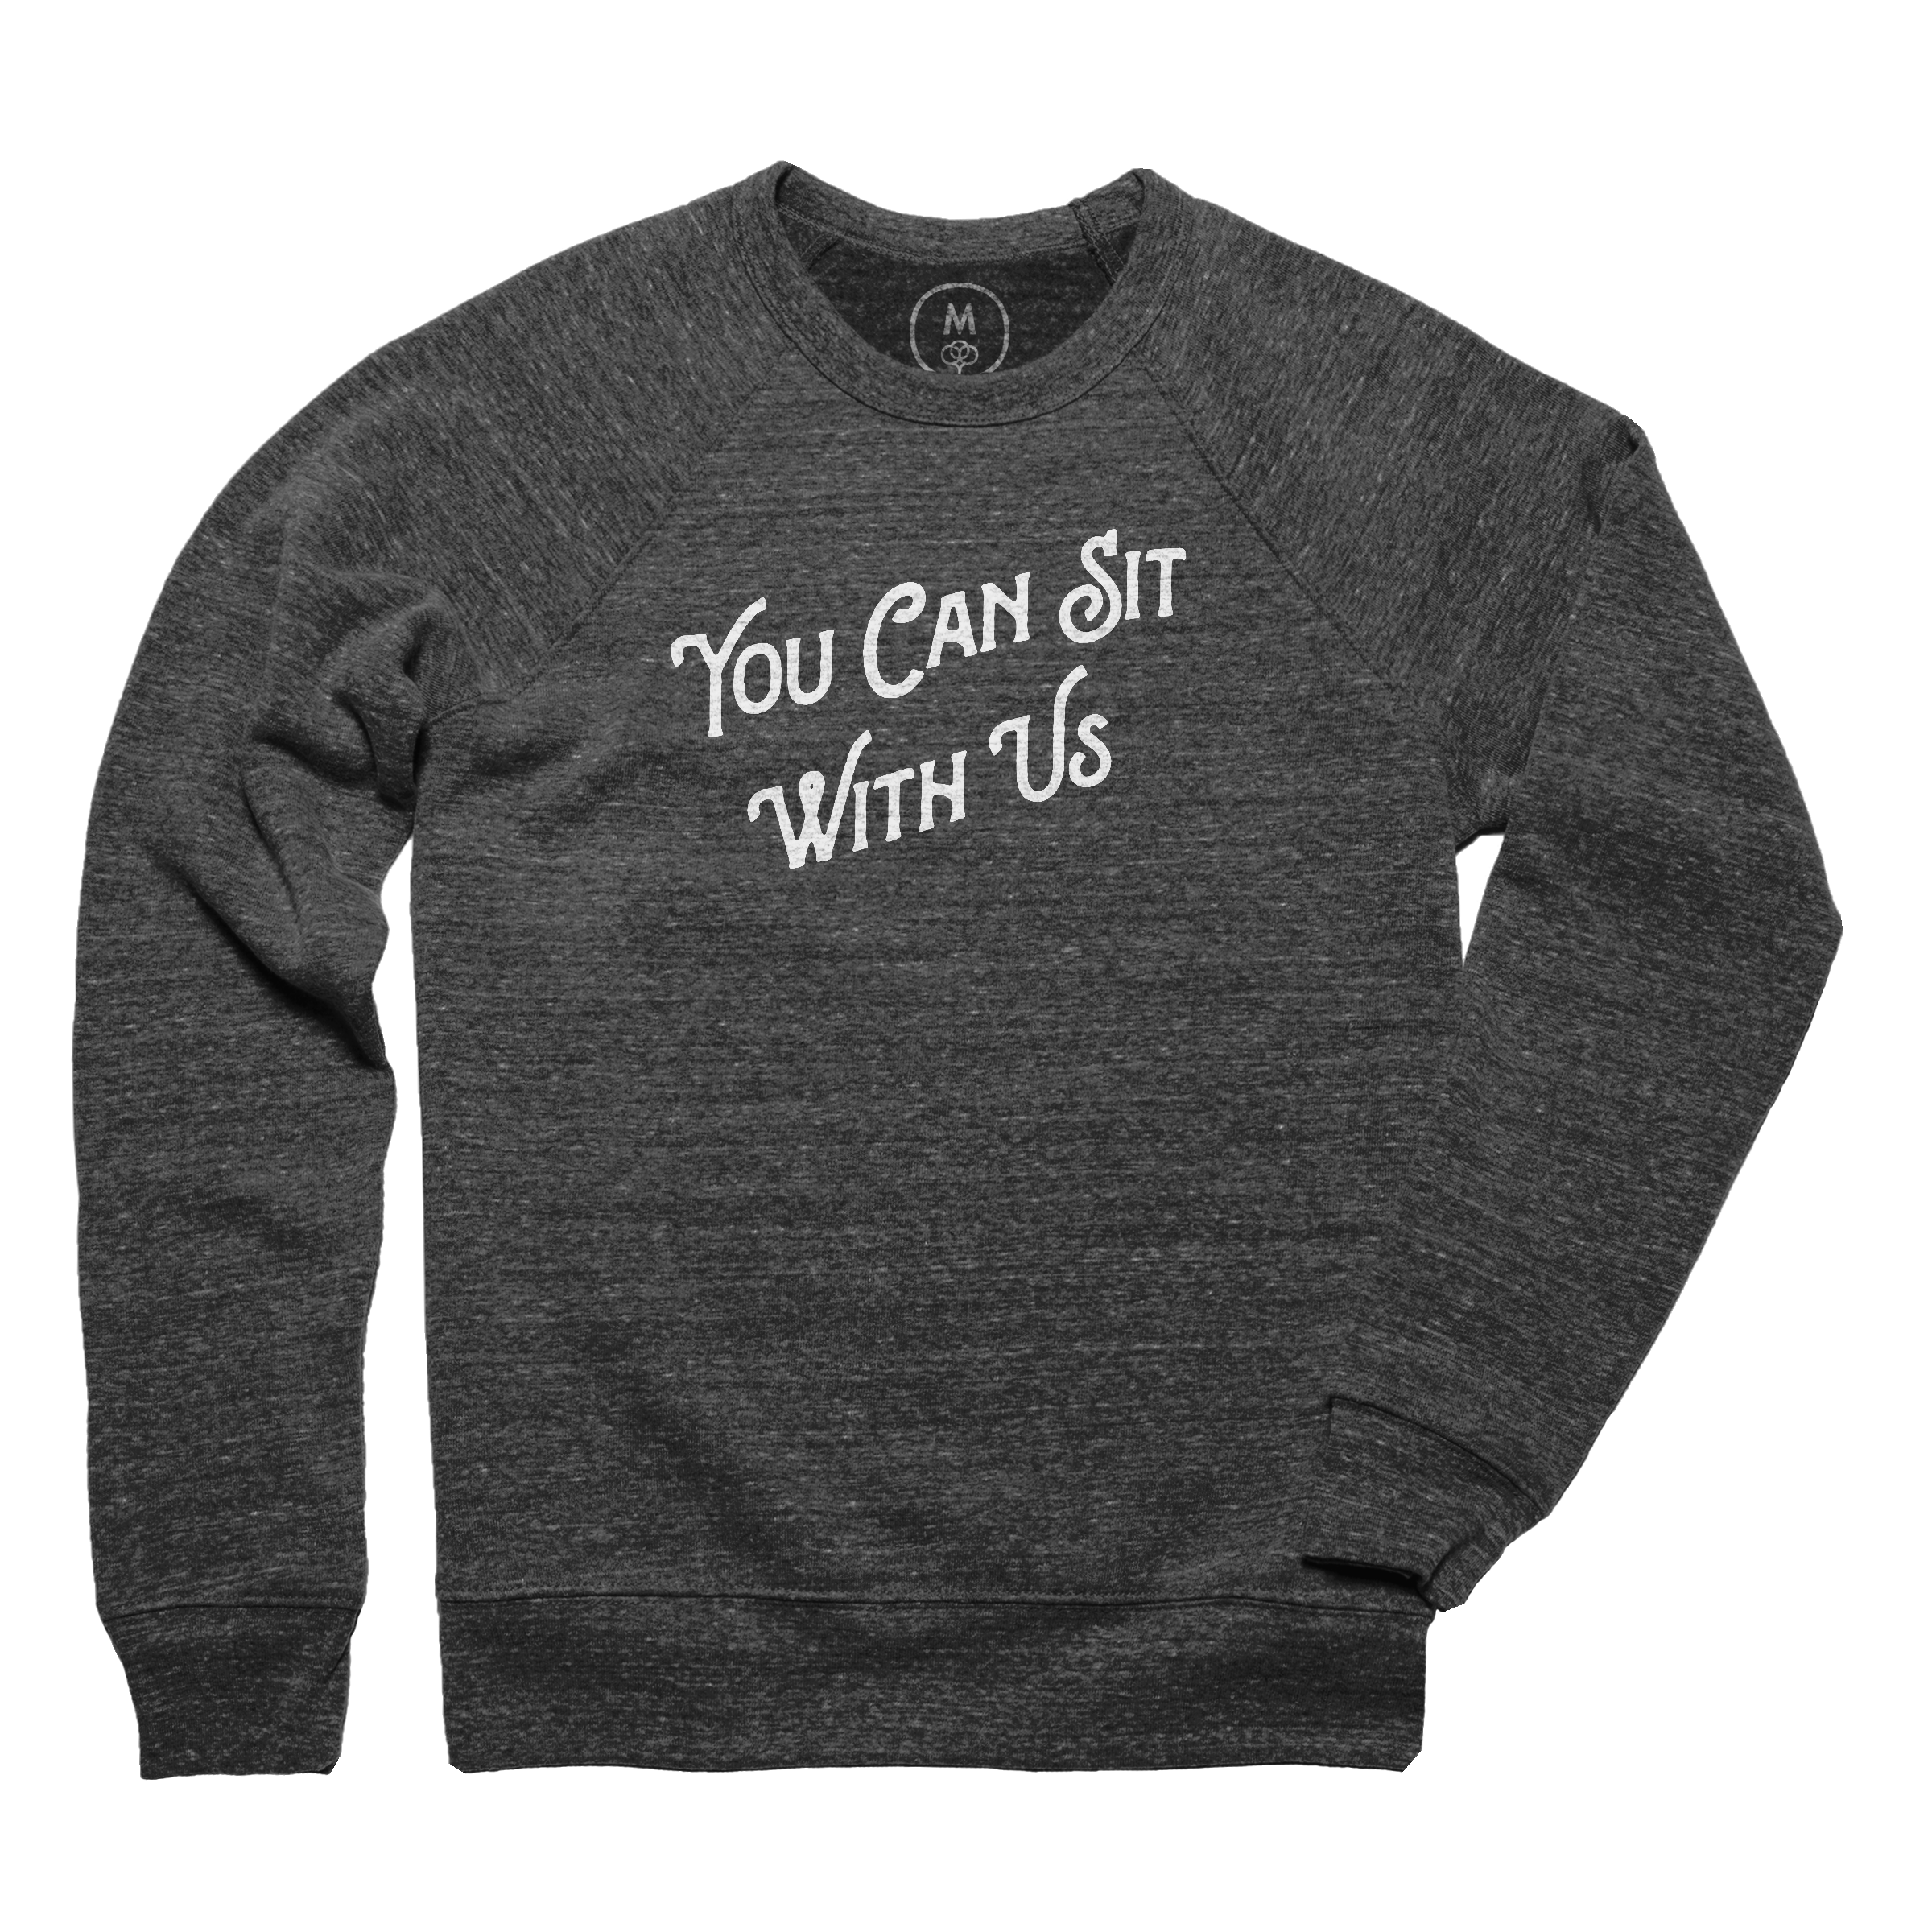 You Can Sit With Us Pullover Crewneck